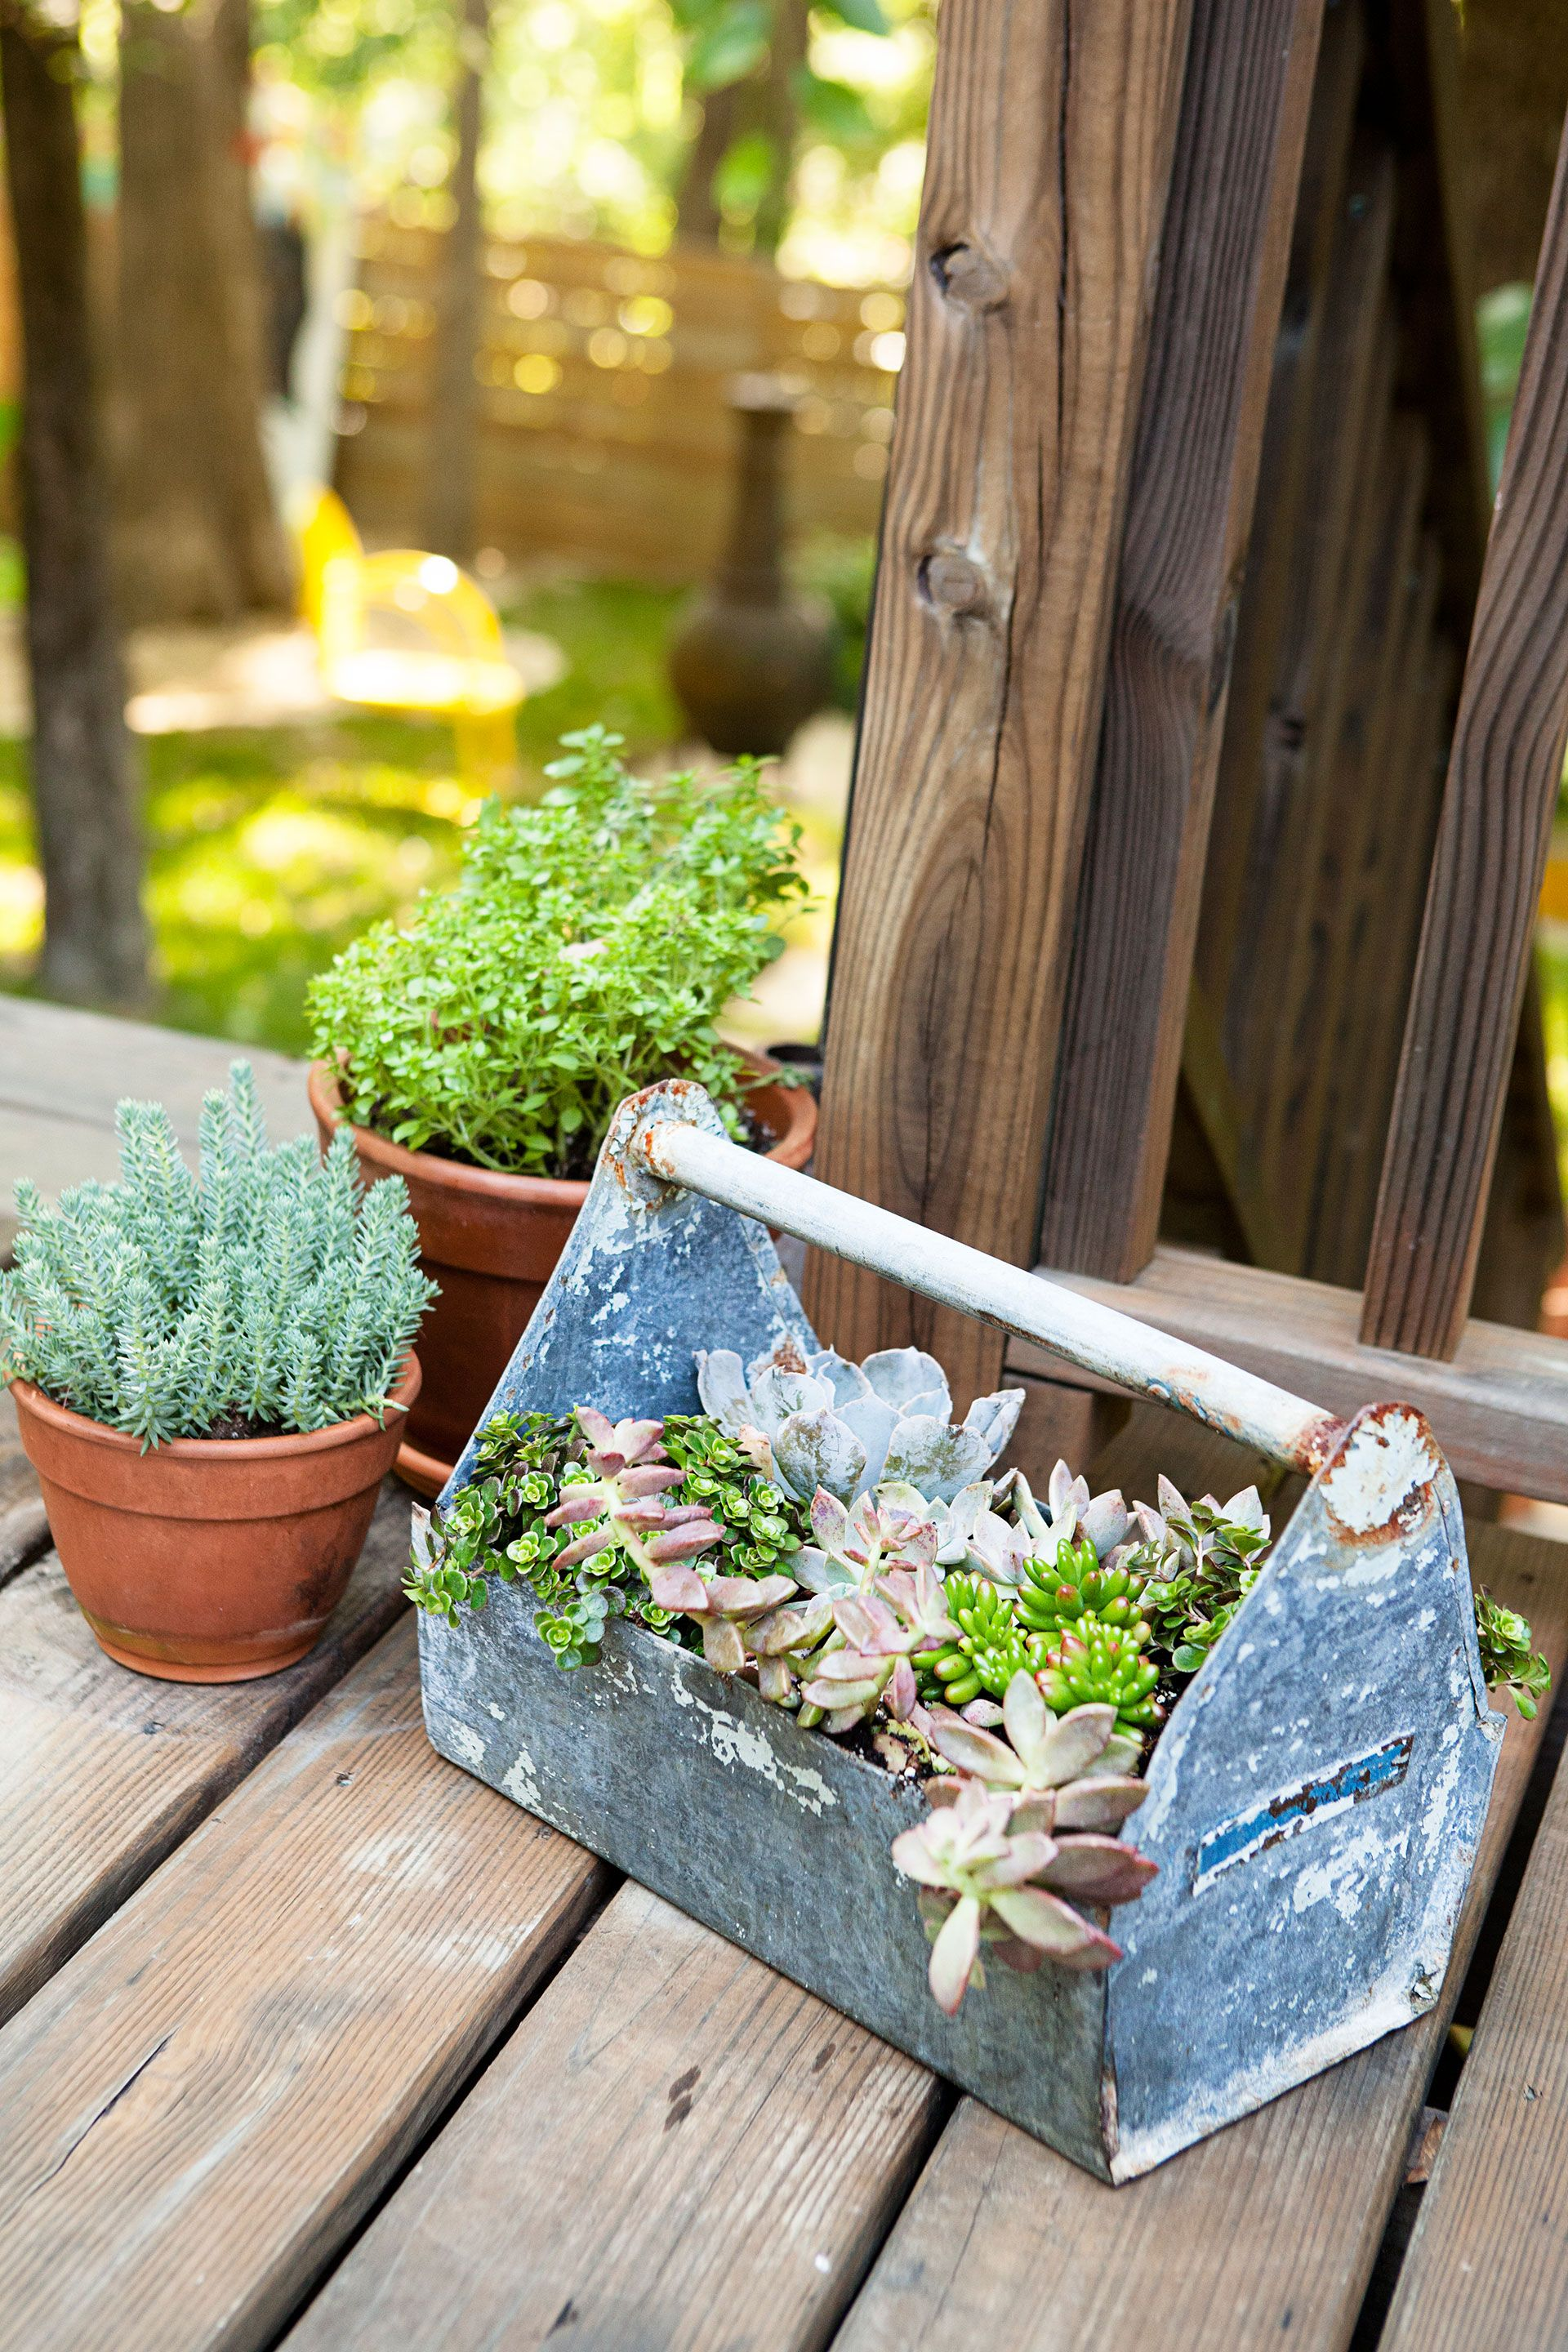 Garten Design Online Shop 40 Small Garden Ideas Small Garden Designs